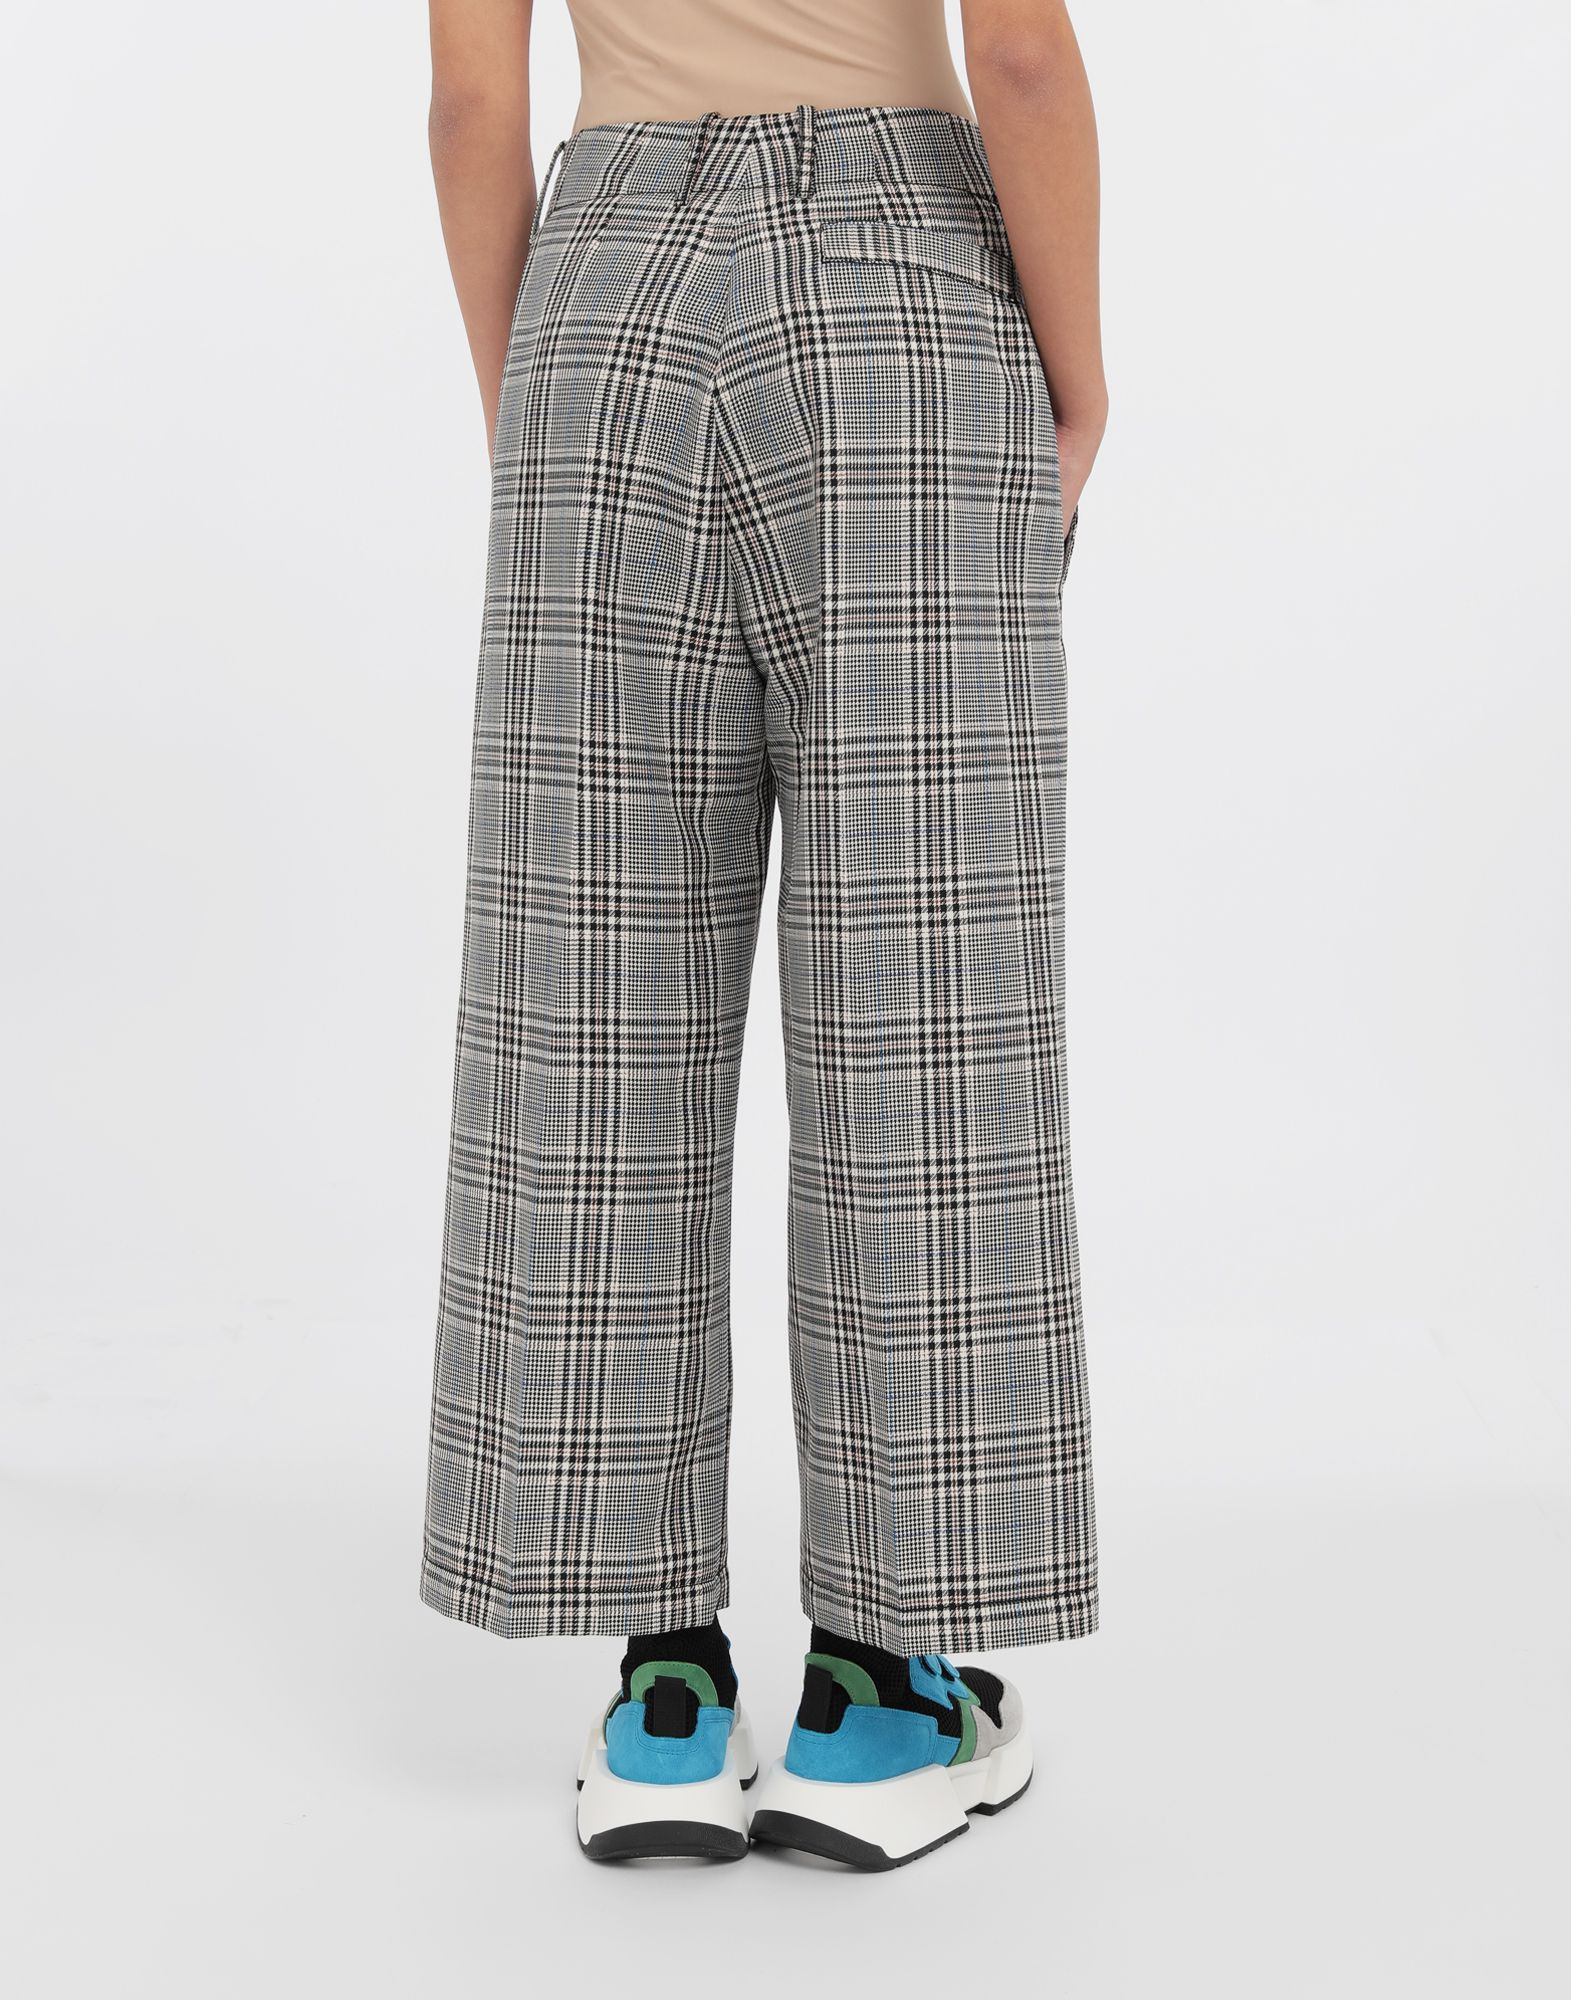 MM6 MAISON MARGIELA Checked wool-blend pants Casual pants Woman e